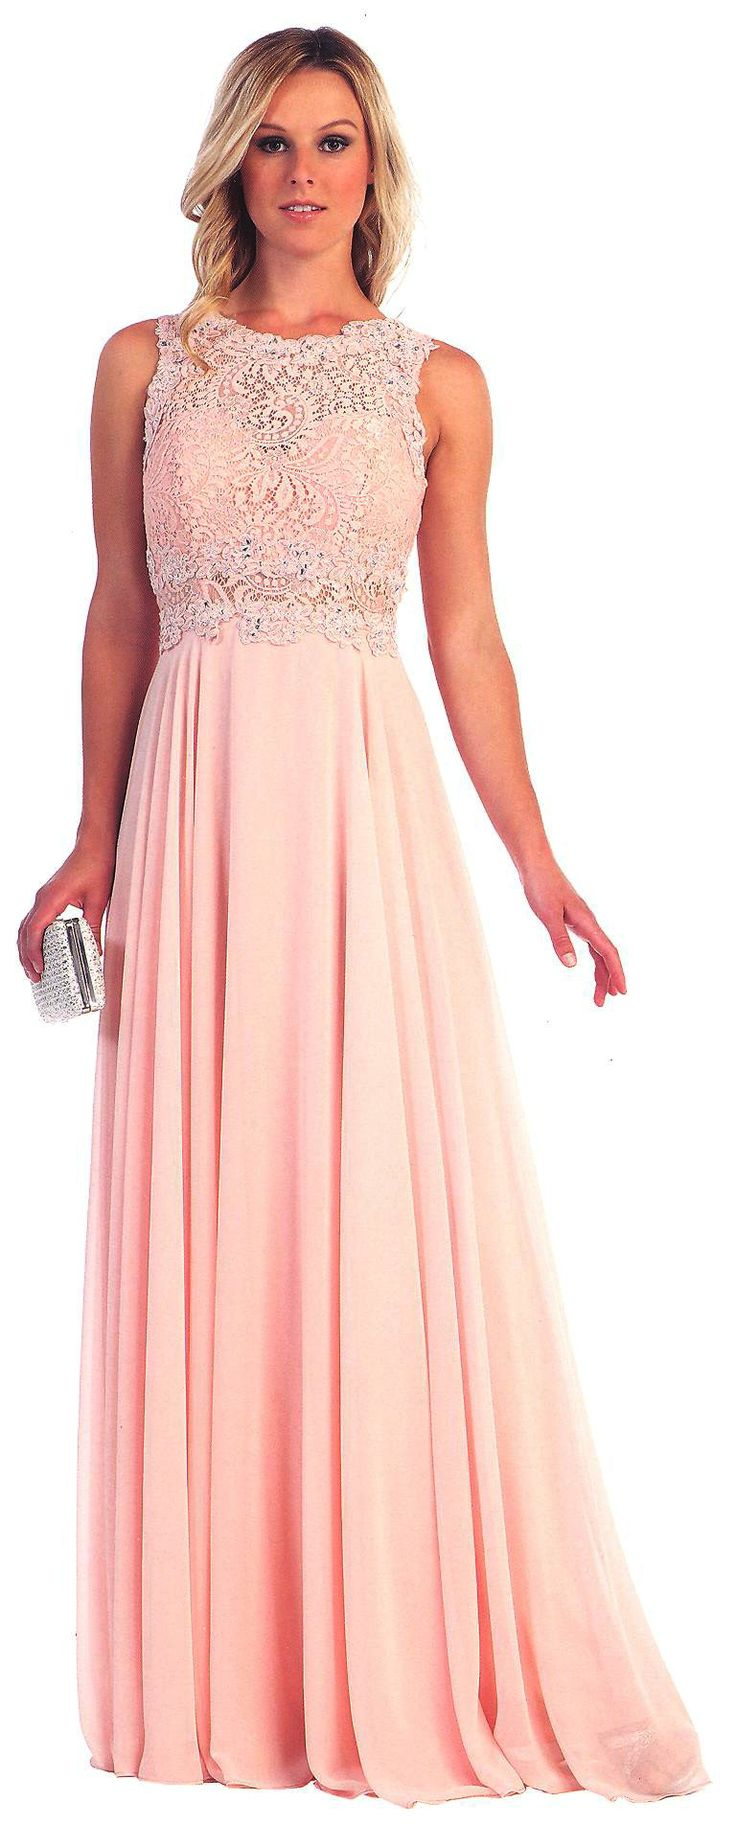 Year 6 long prom dresses under $200